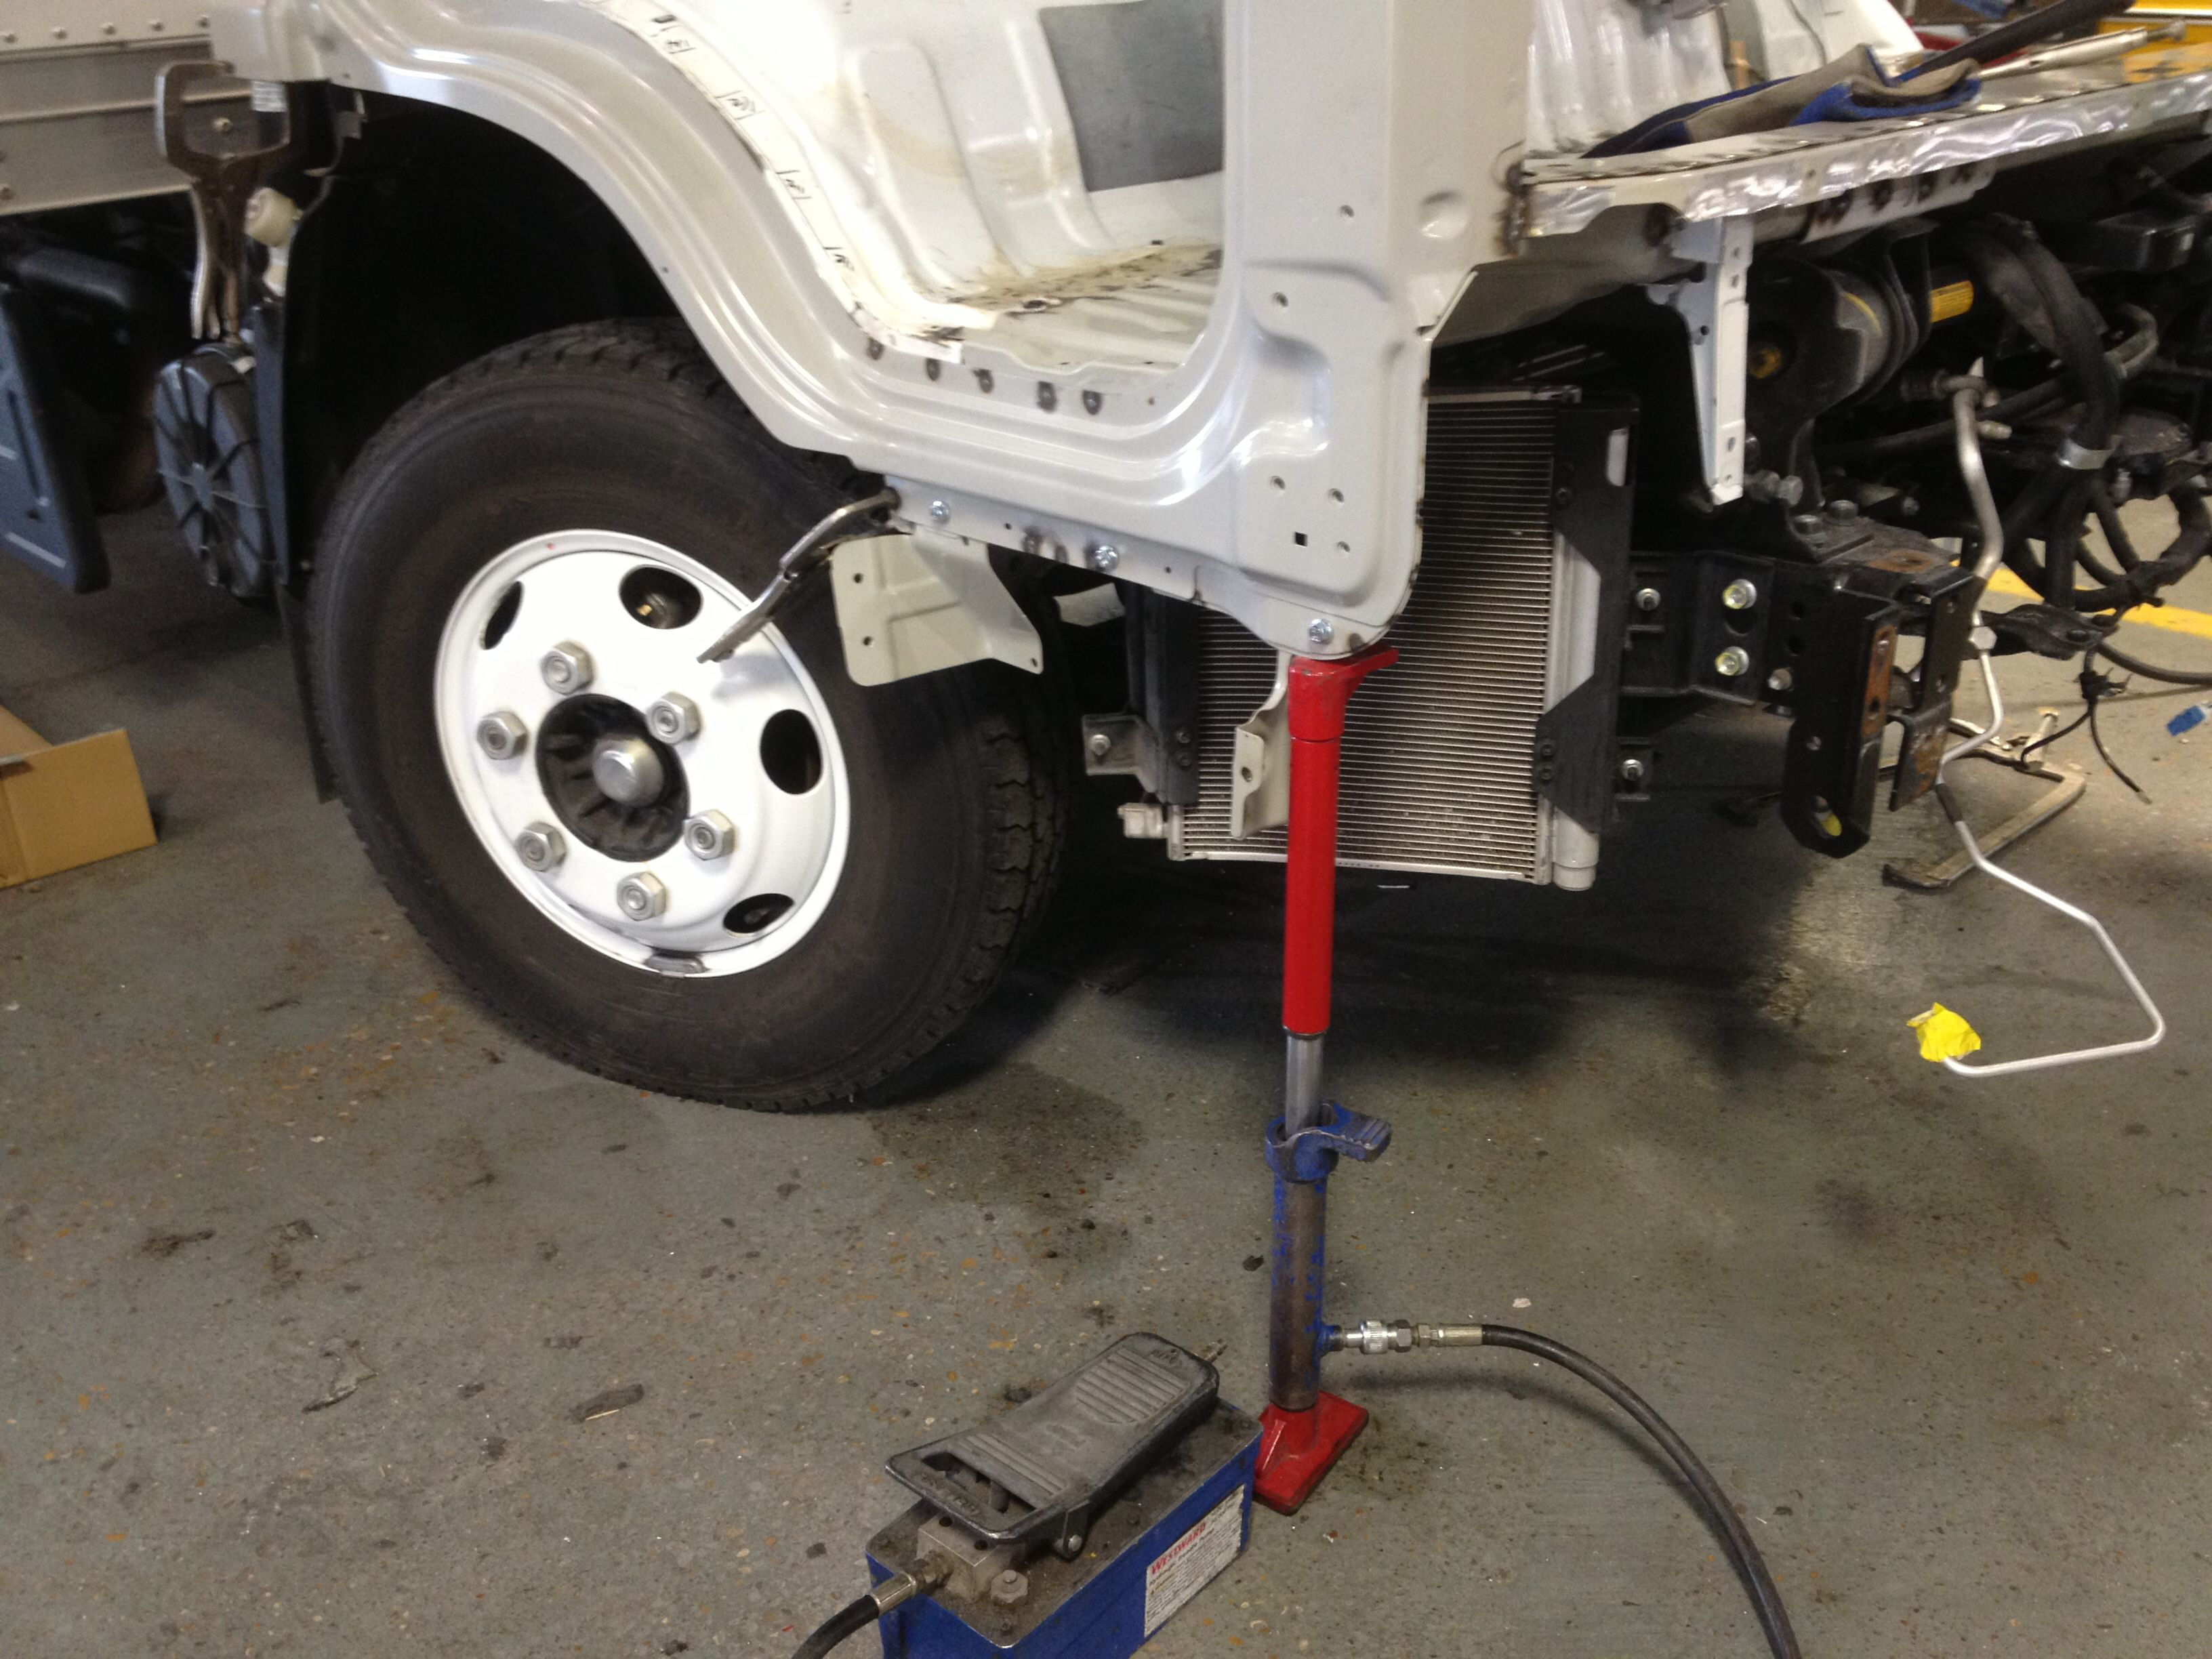 Collision Damage Repair On An Isuzu Npr In This Picture The Door Frame Is Being Squared And Spot Welded In Place Spot Welding Roll Up Doors Repair